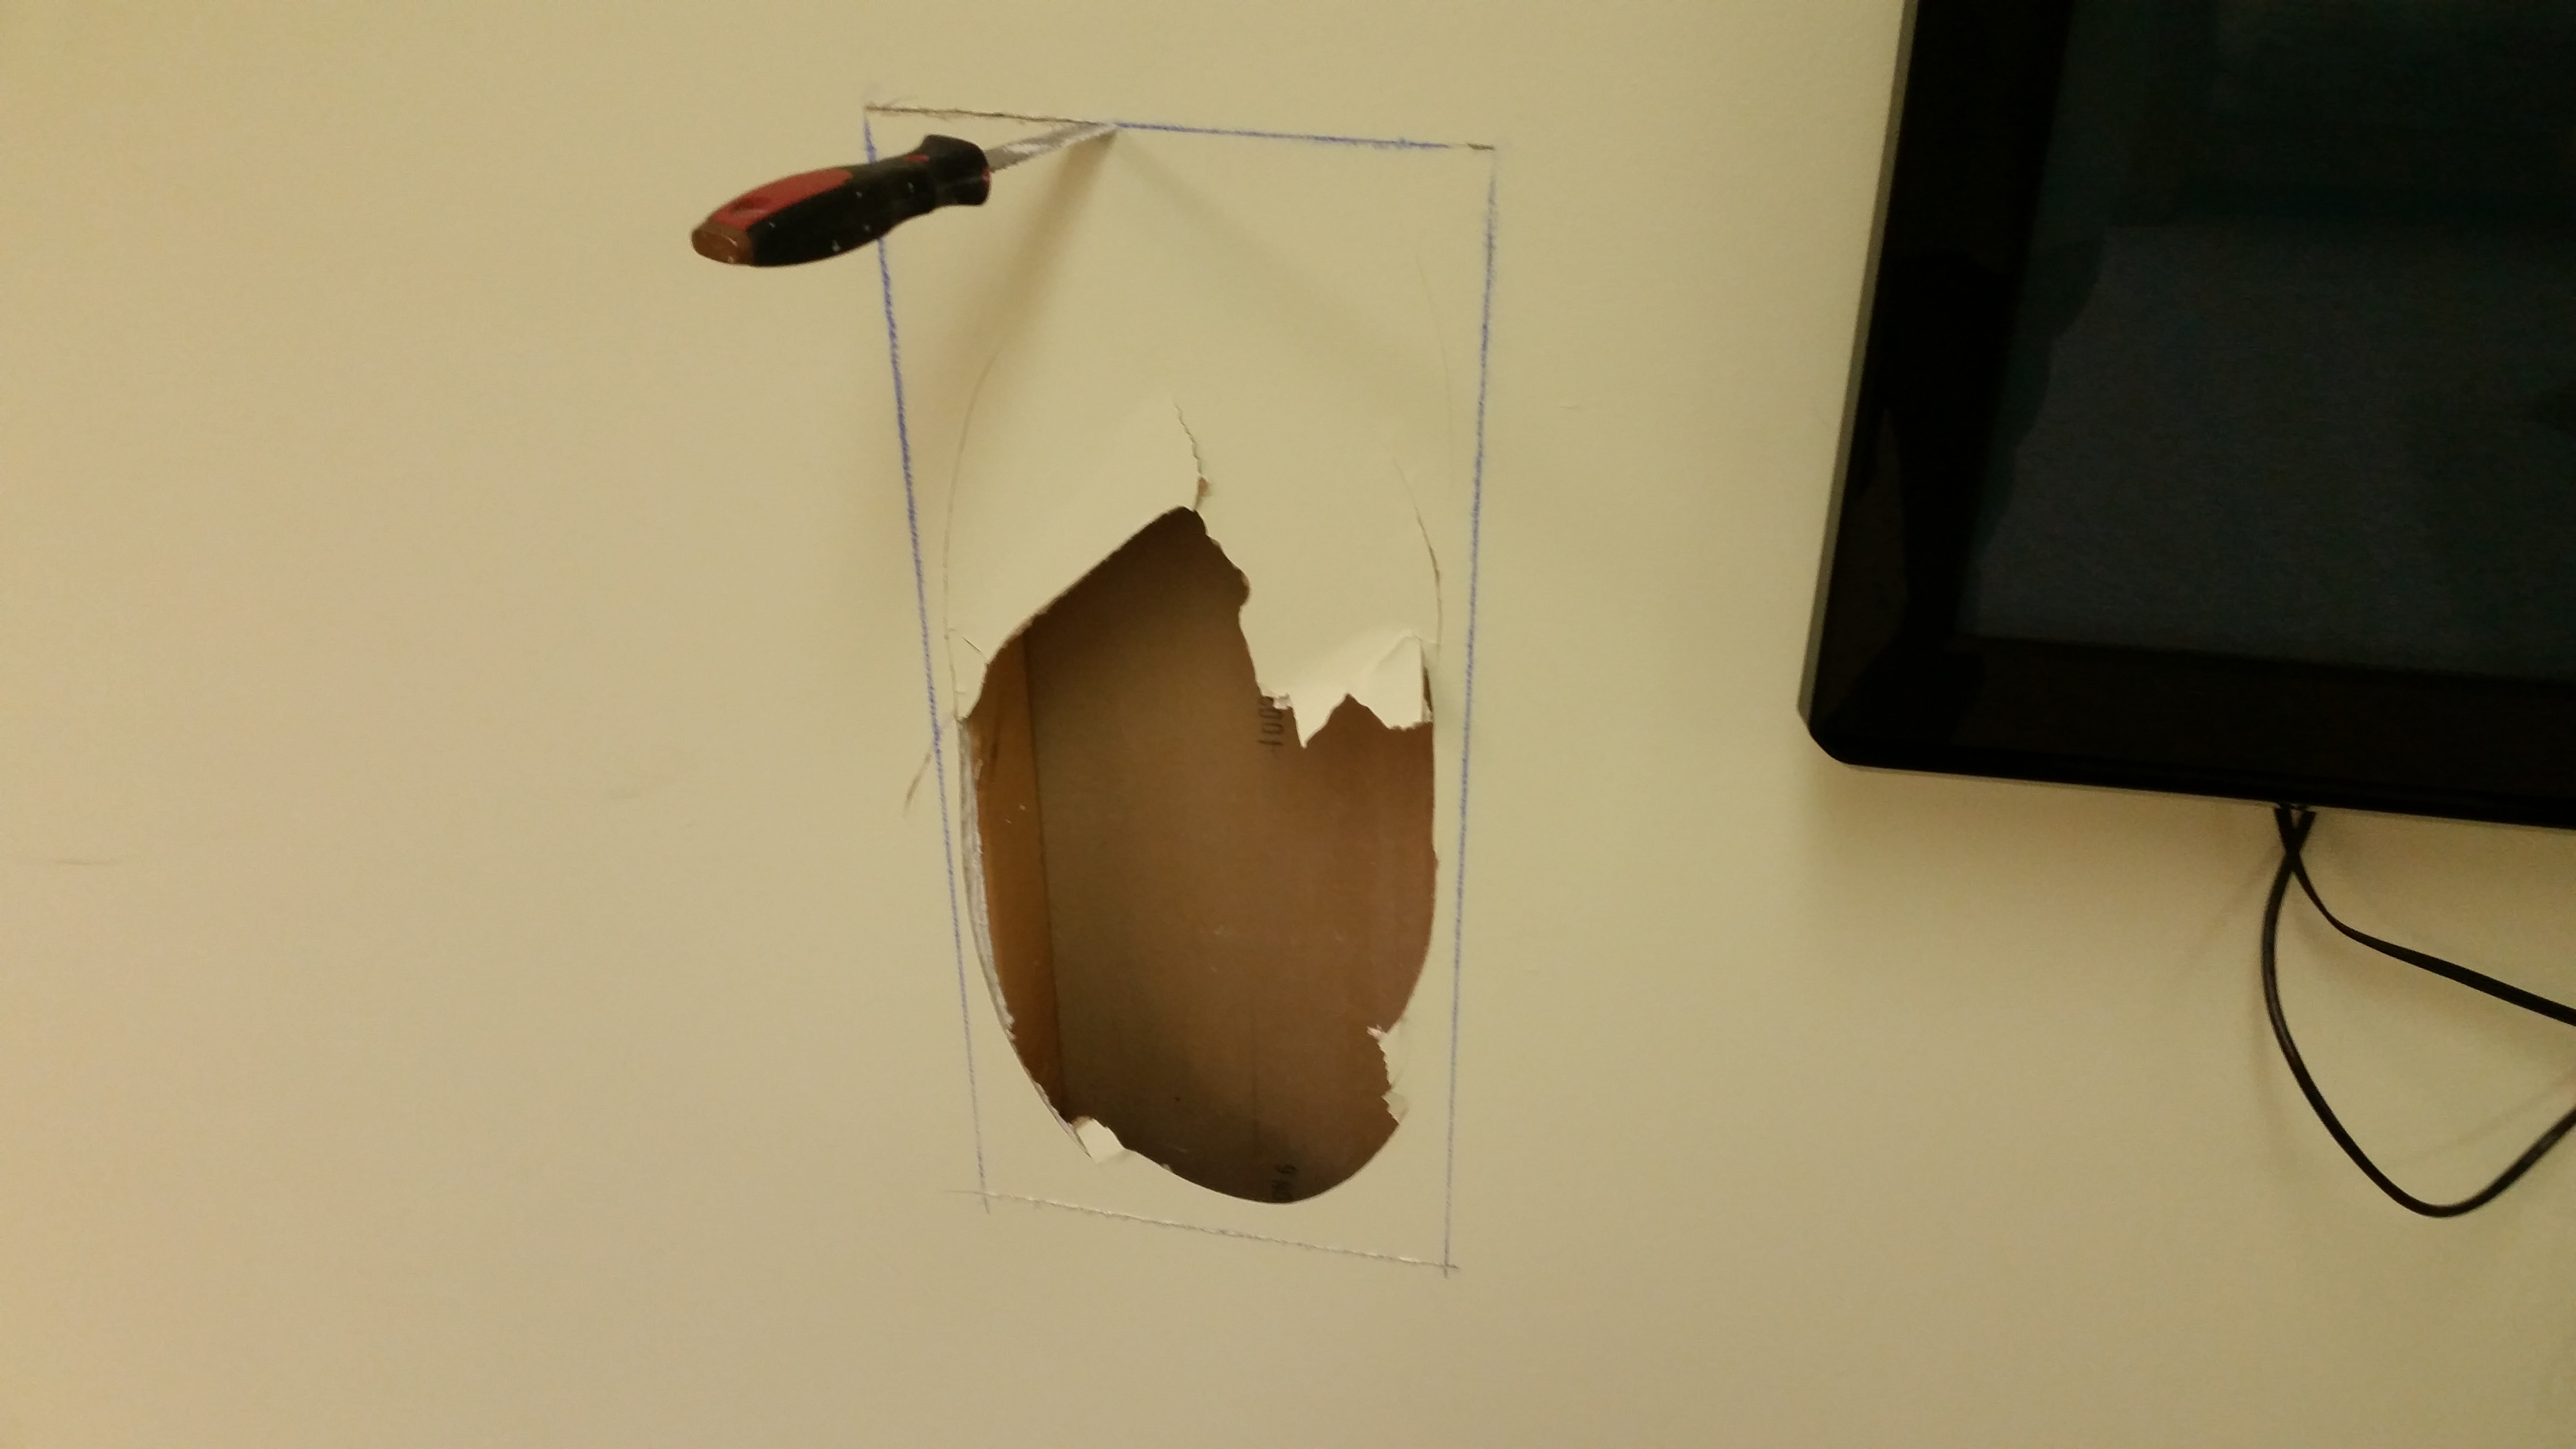 Drywall Repair for dummies